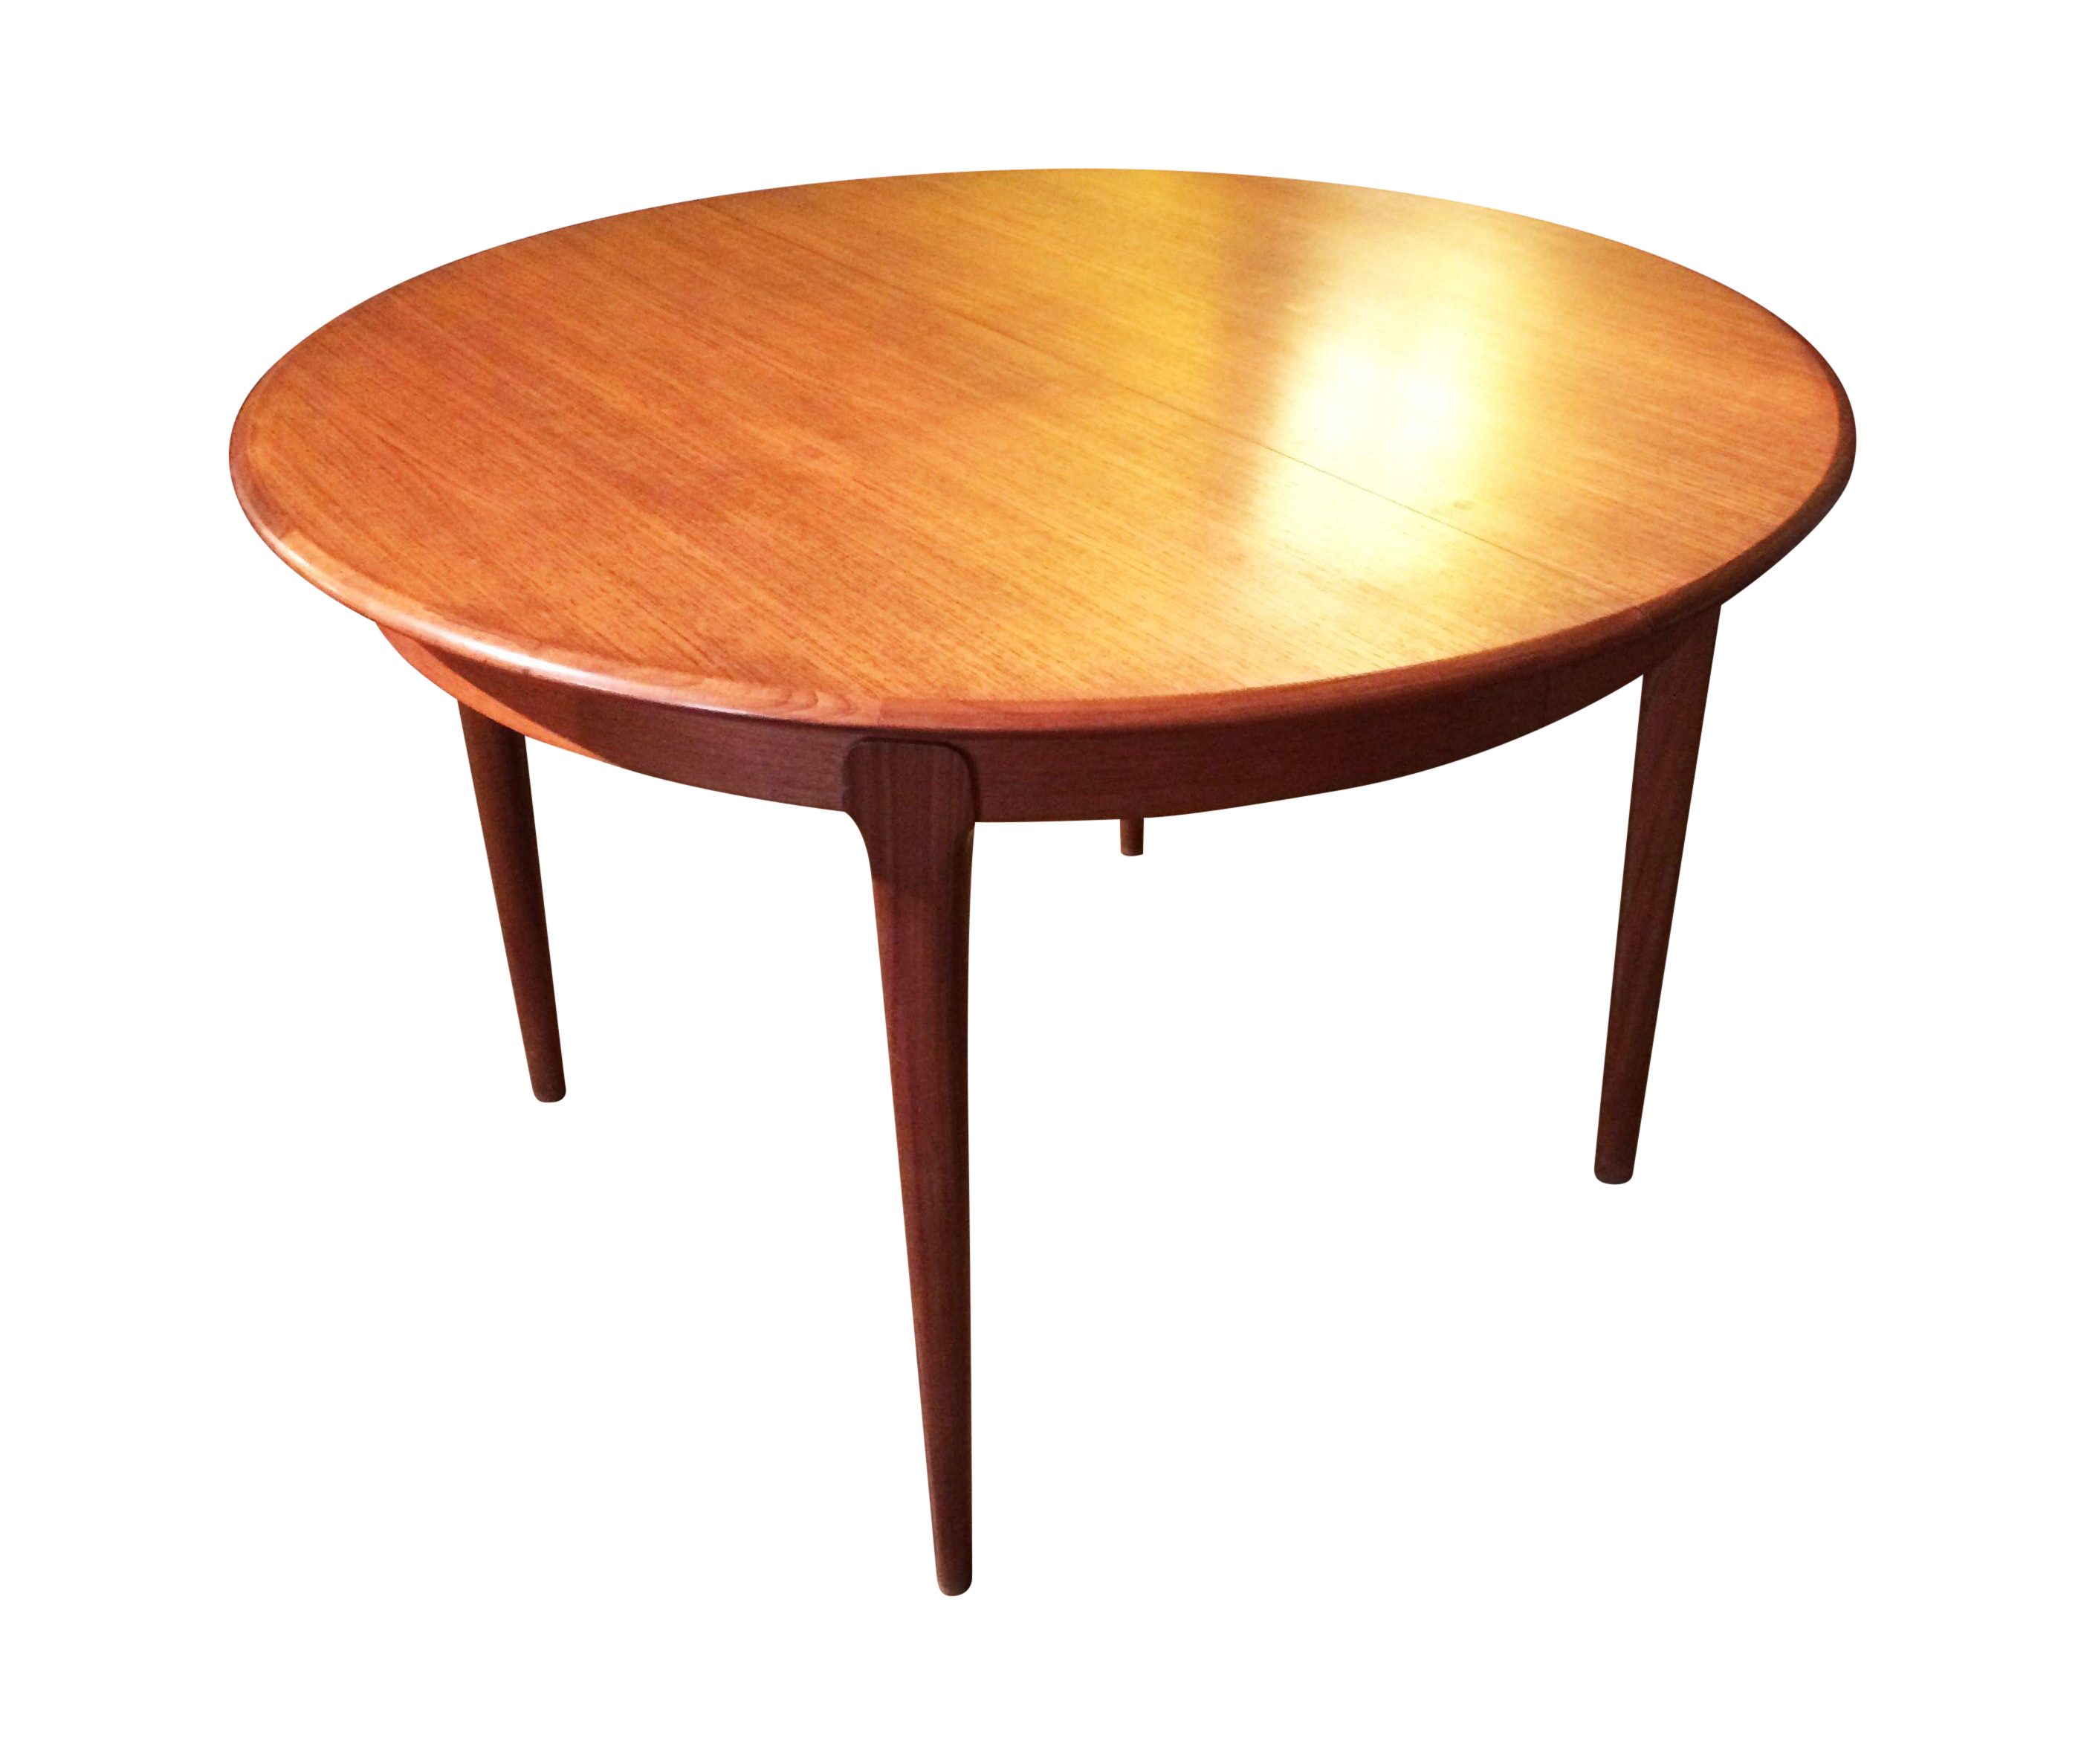 French kitchen table  French MidCentury Dining Table on Chairish  My home in